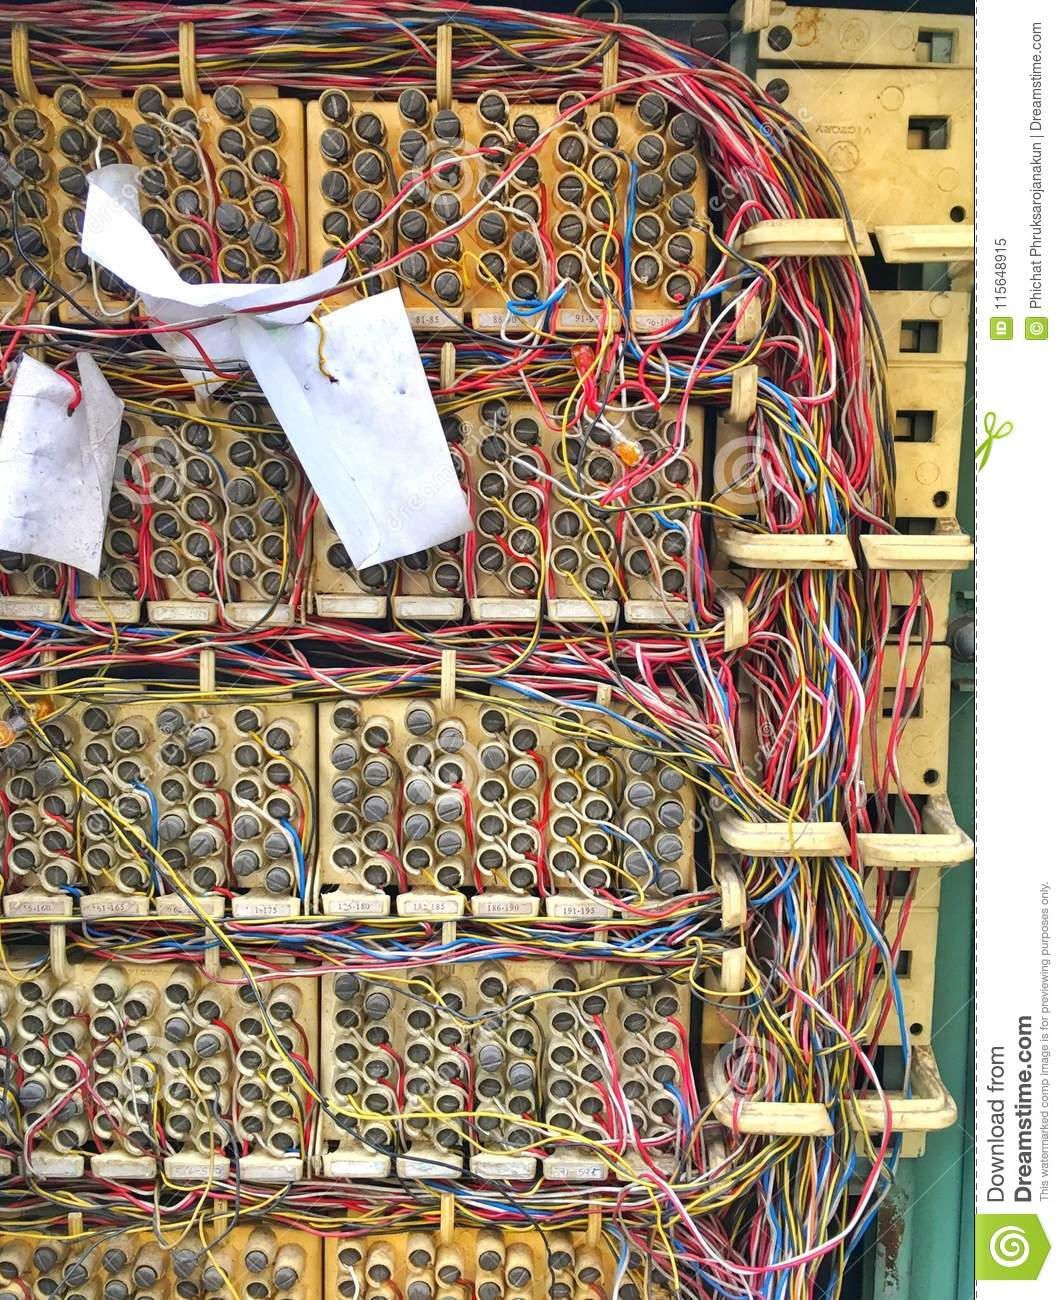 hight resolution of telephone exchange circuit and system in the cabinet control with messy copper wire jumping on the board